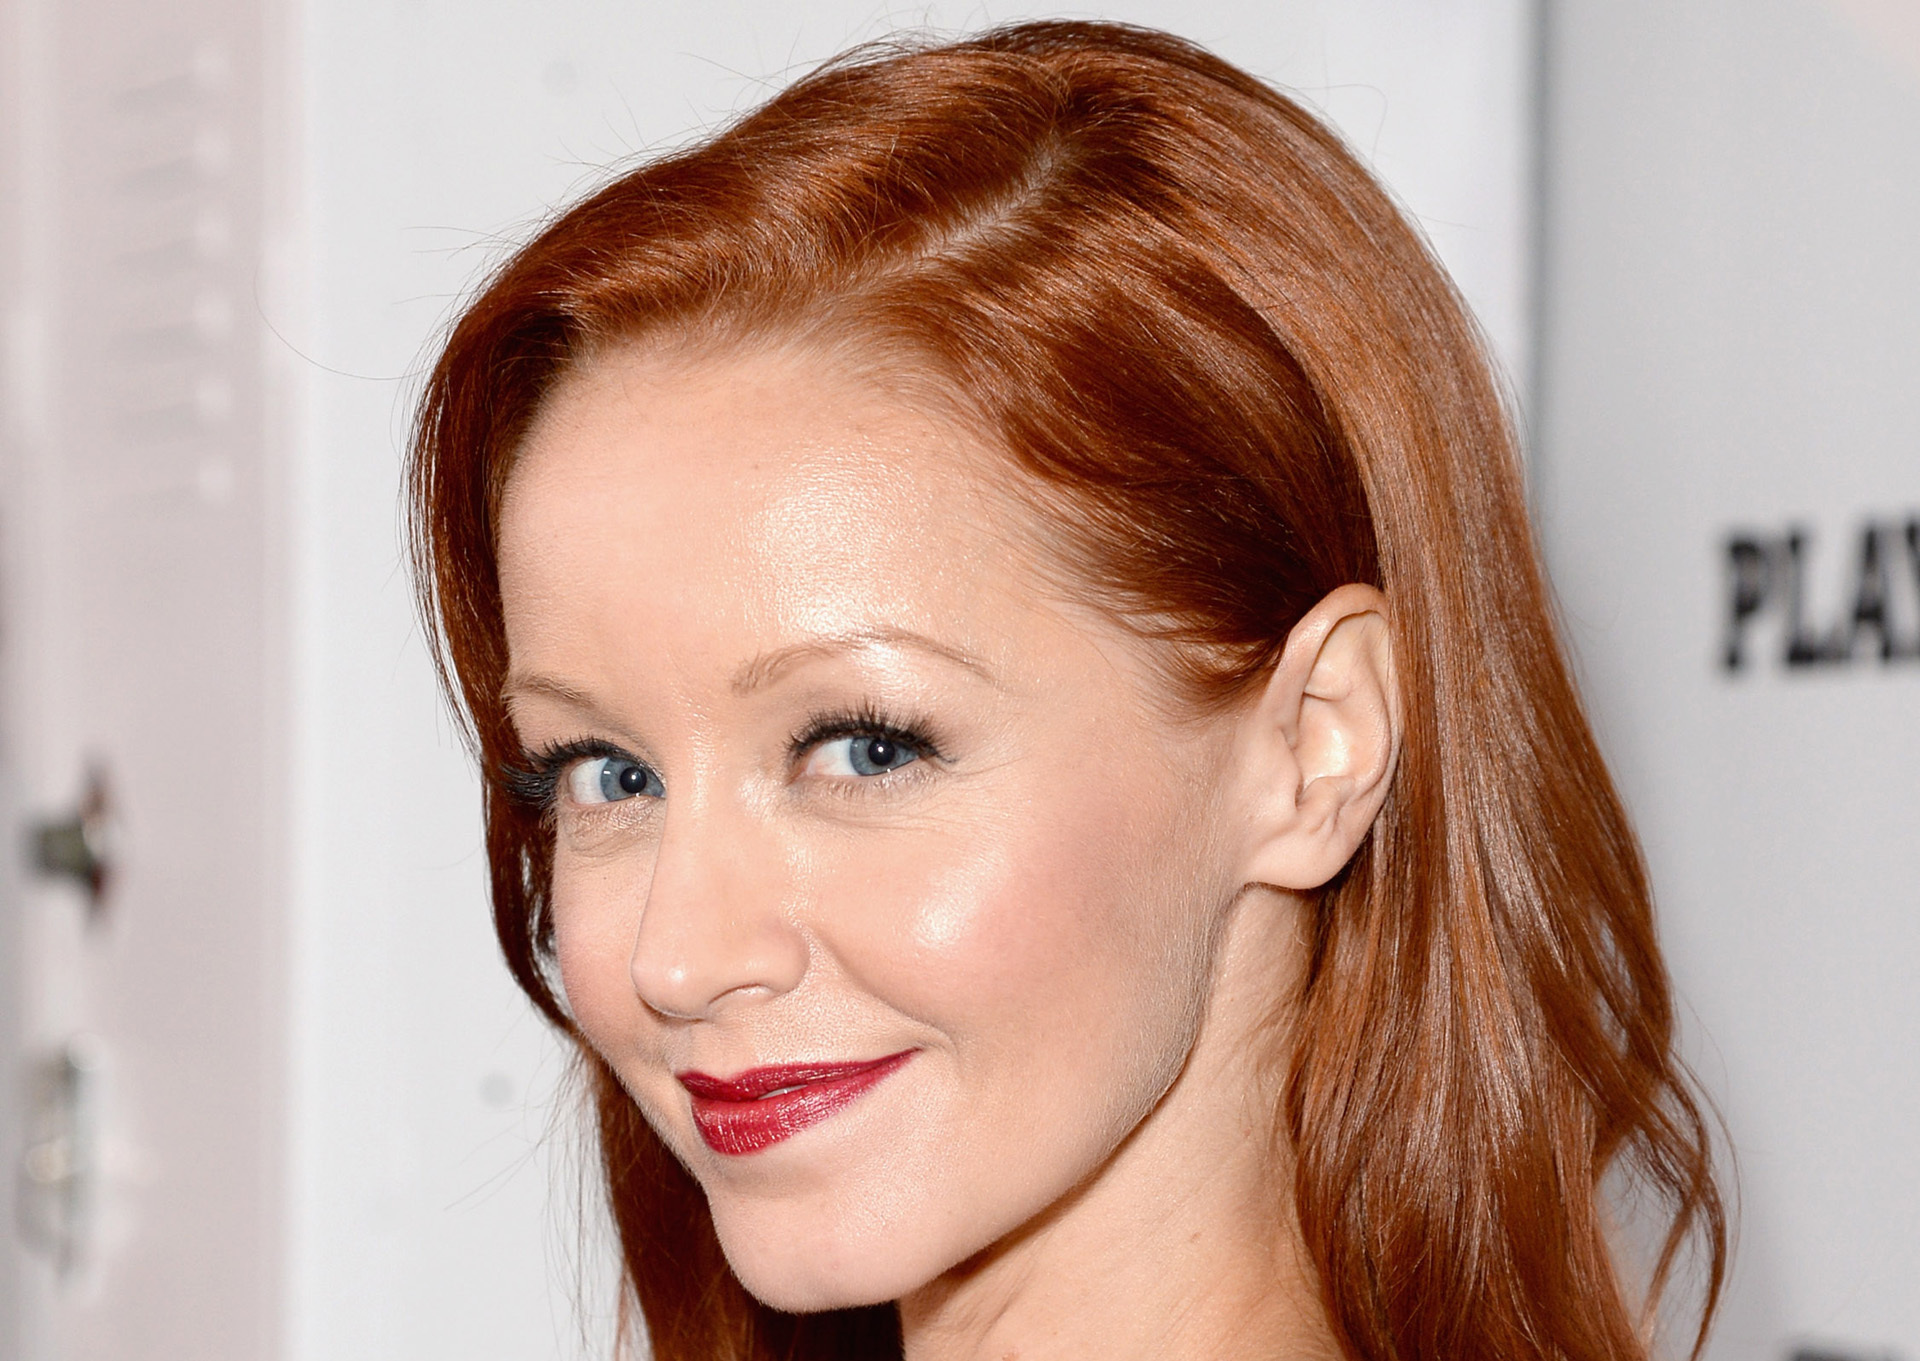 lindy booth wiki